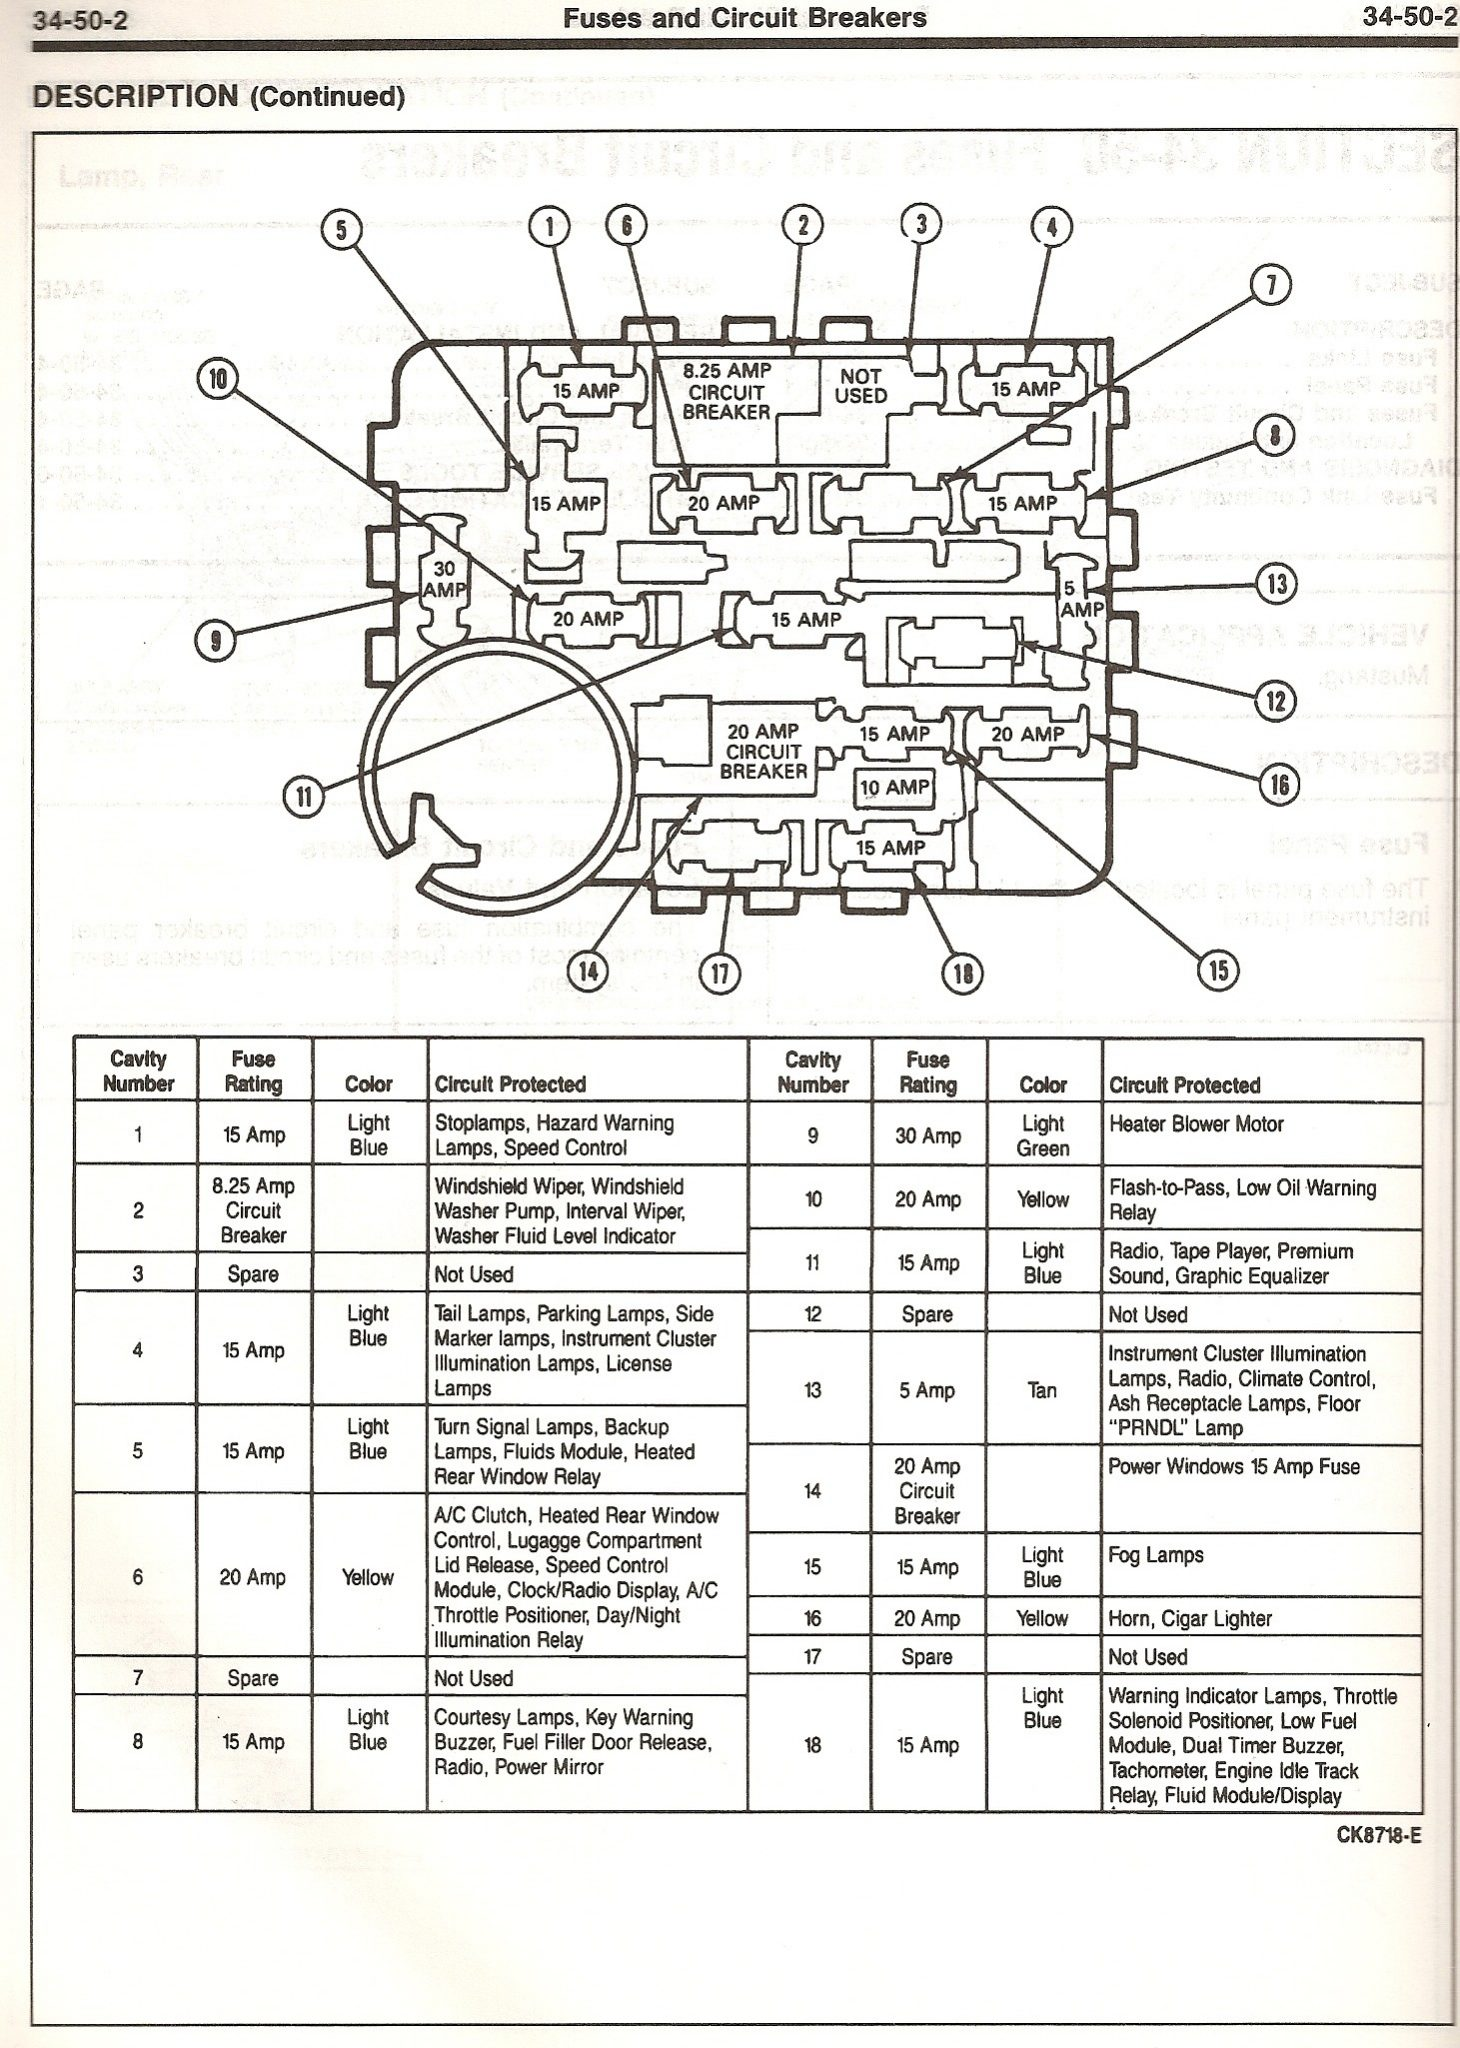 fuse diagram for 95 mustang car wiring diagrams explained u2022 rh ethermag co 95 mustang gt 5.0 fuse box diagram 95 mustang 5.0 fuse box diagram